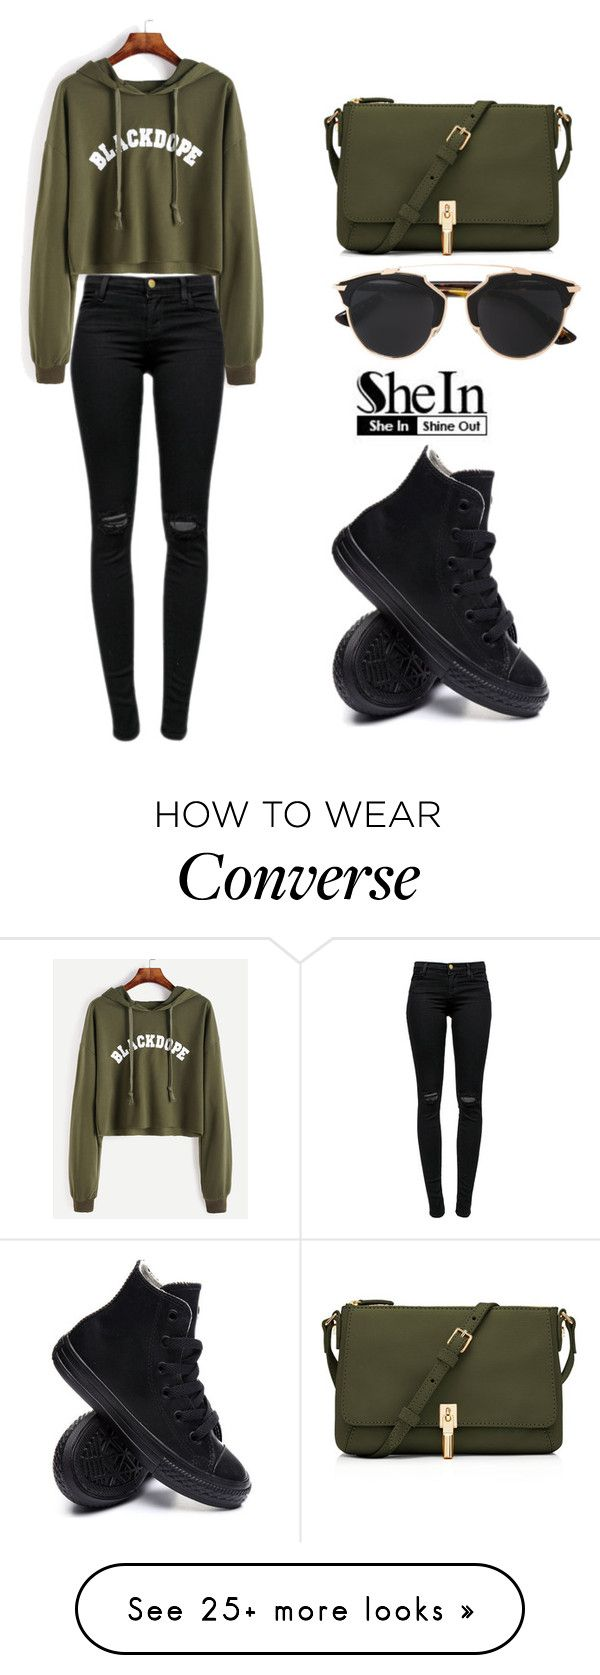 """SHEIN Sweatshirt"" by tania-alves on Polyvore featuring J Brand, Converse, Elizabeth and James and Christian Dior"